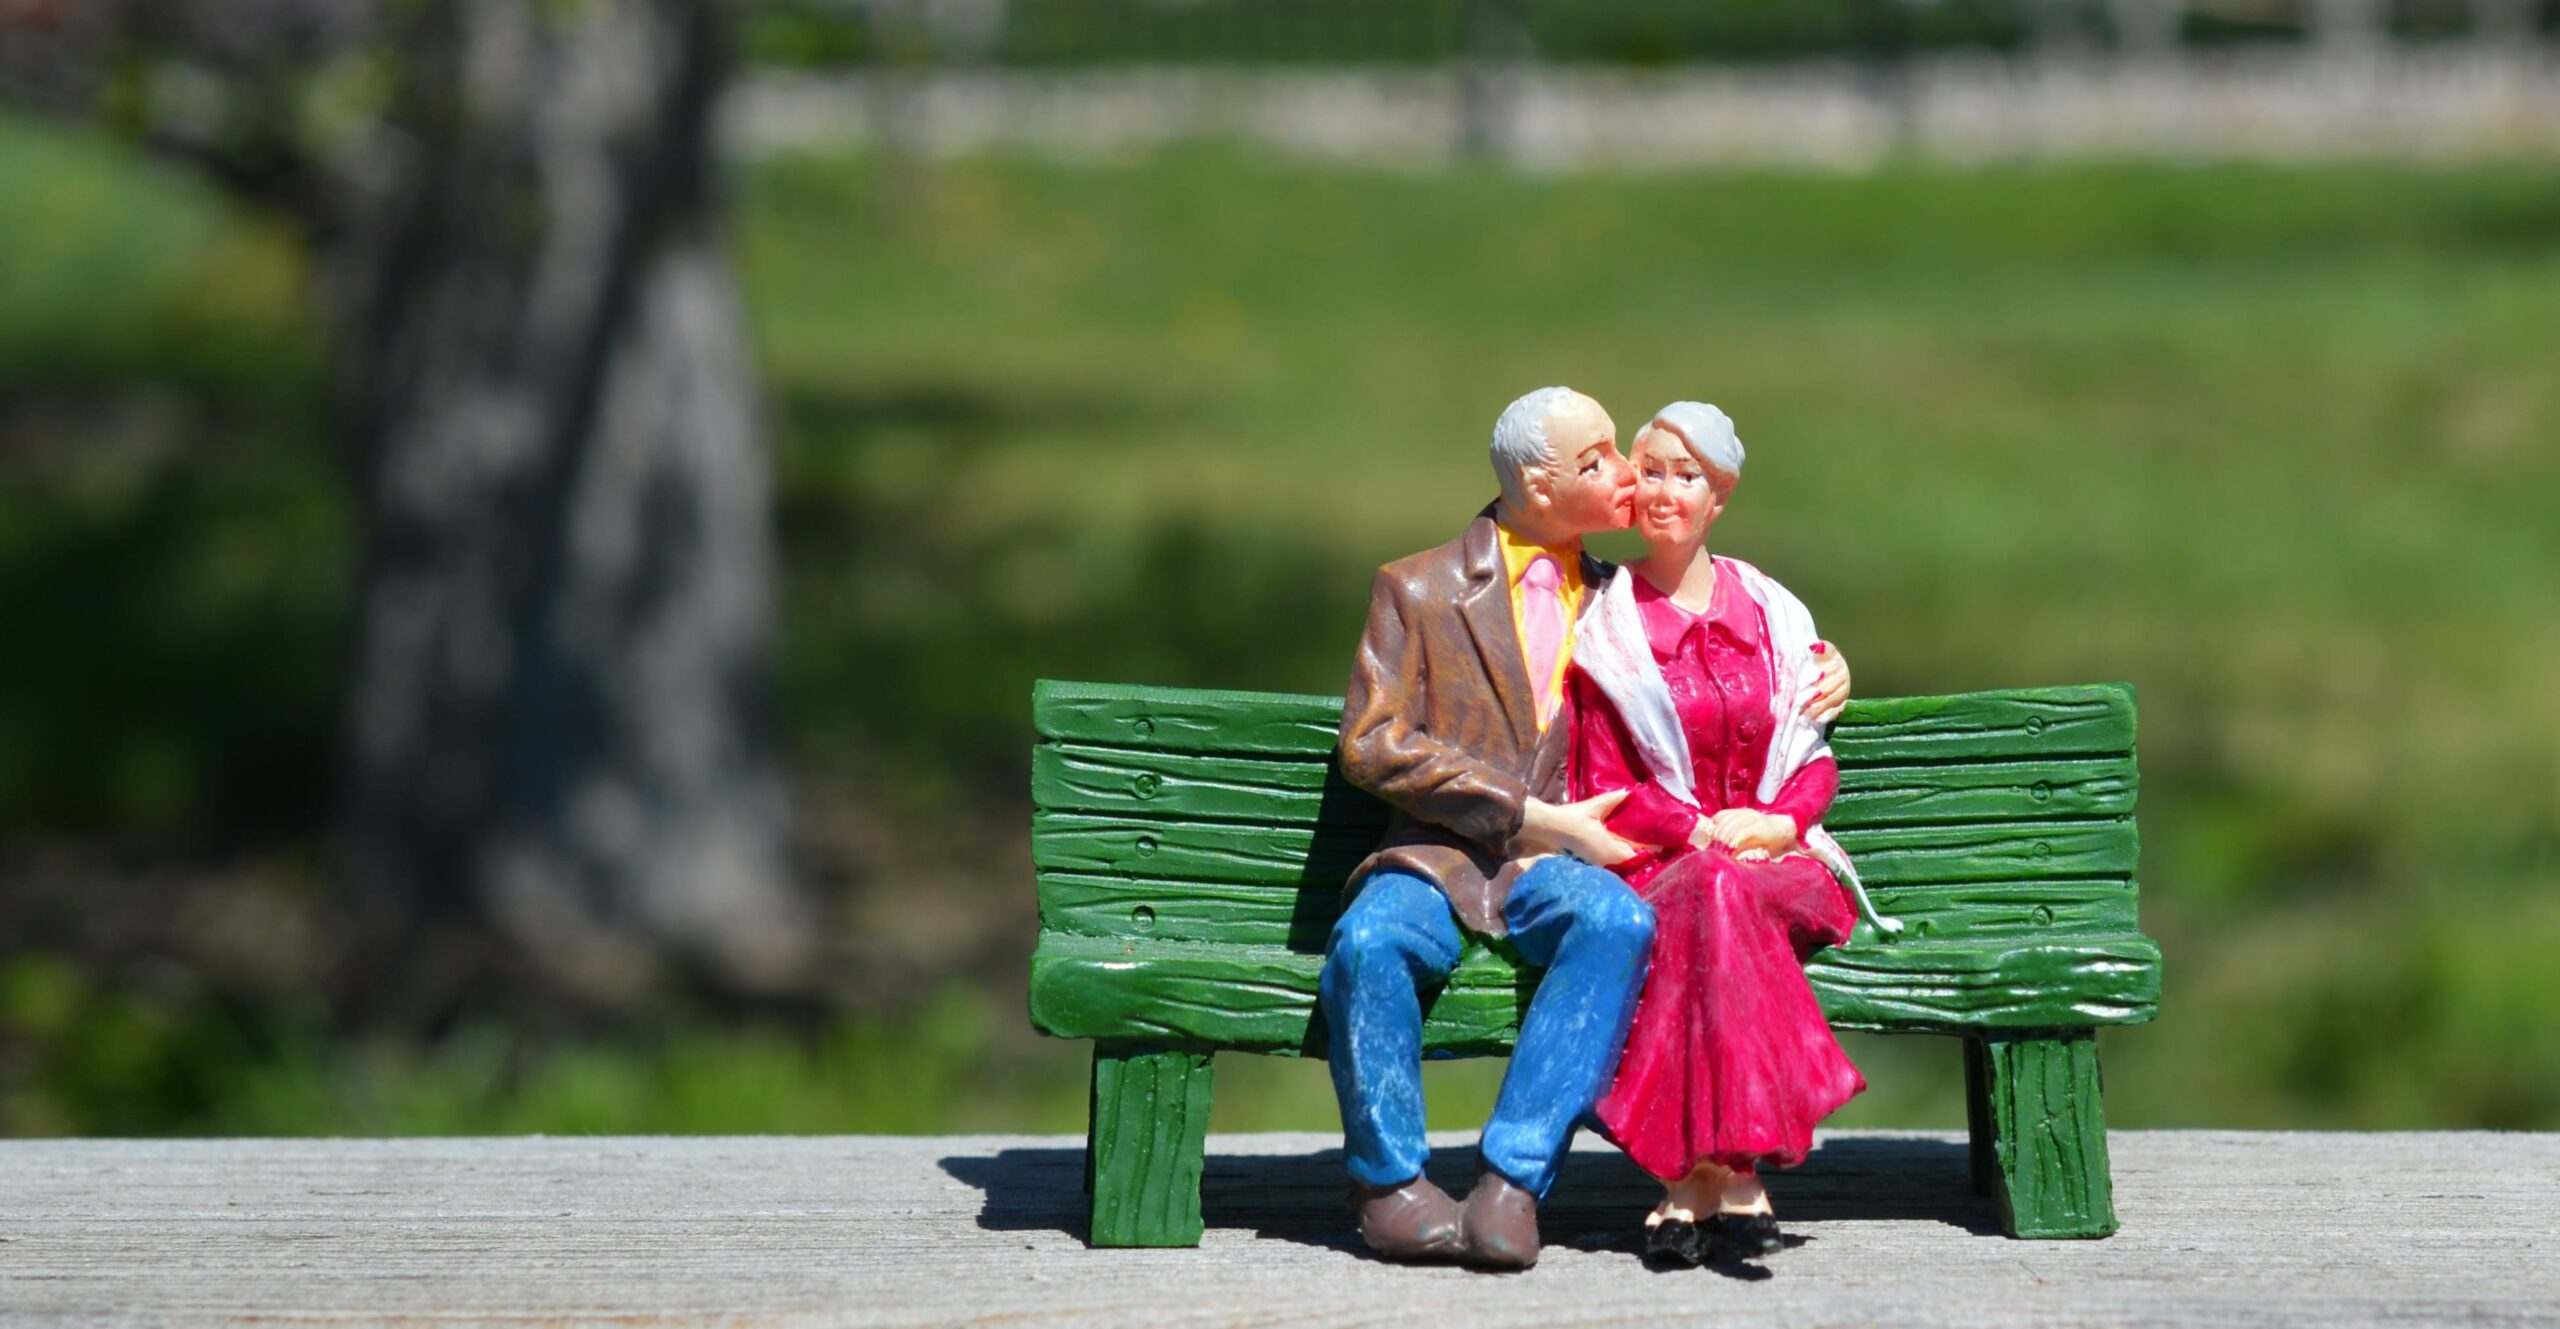 new Medicare card | old couple on bench | HealthCare.com